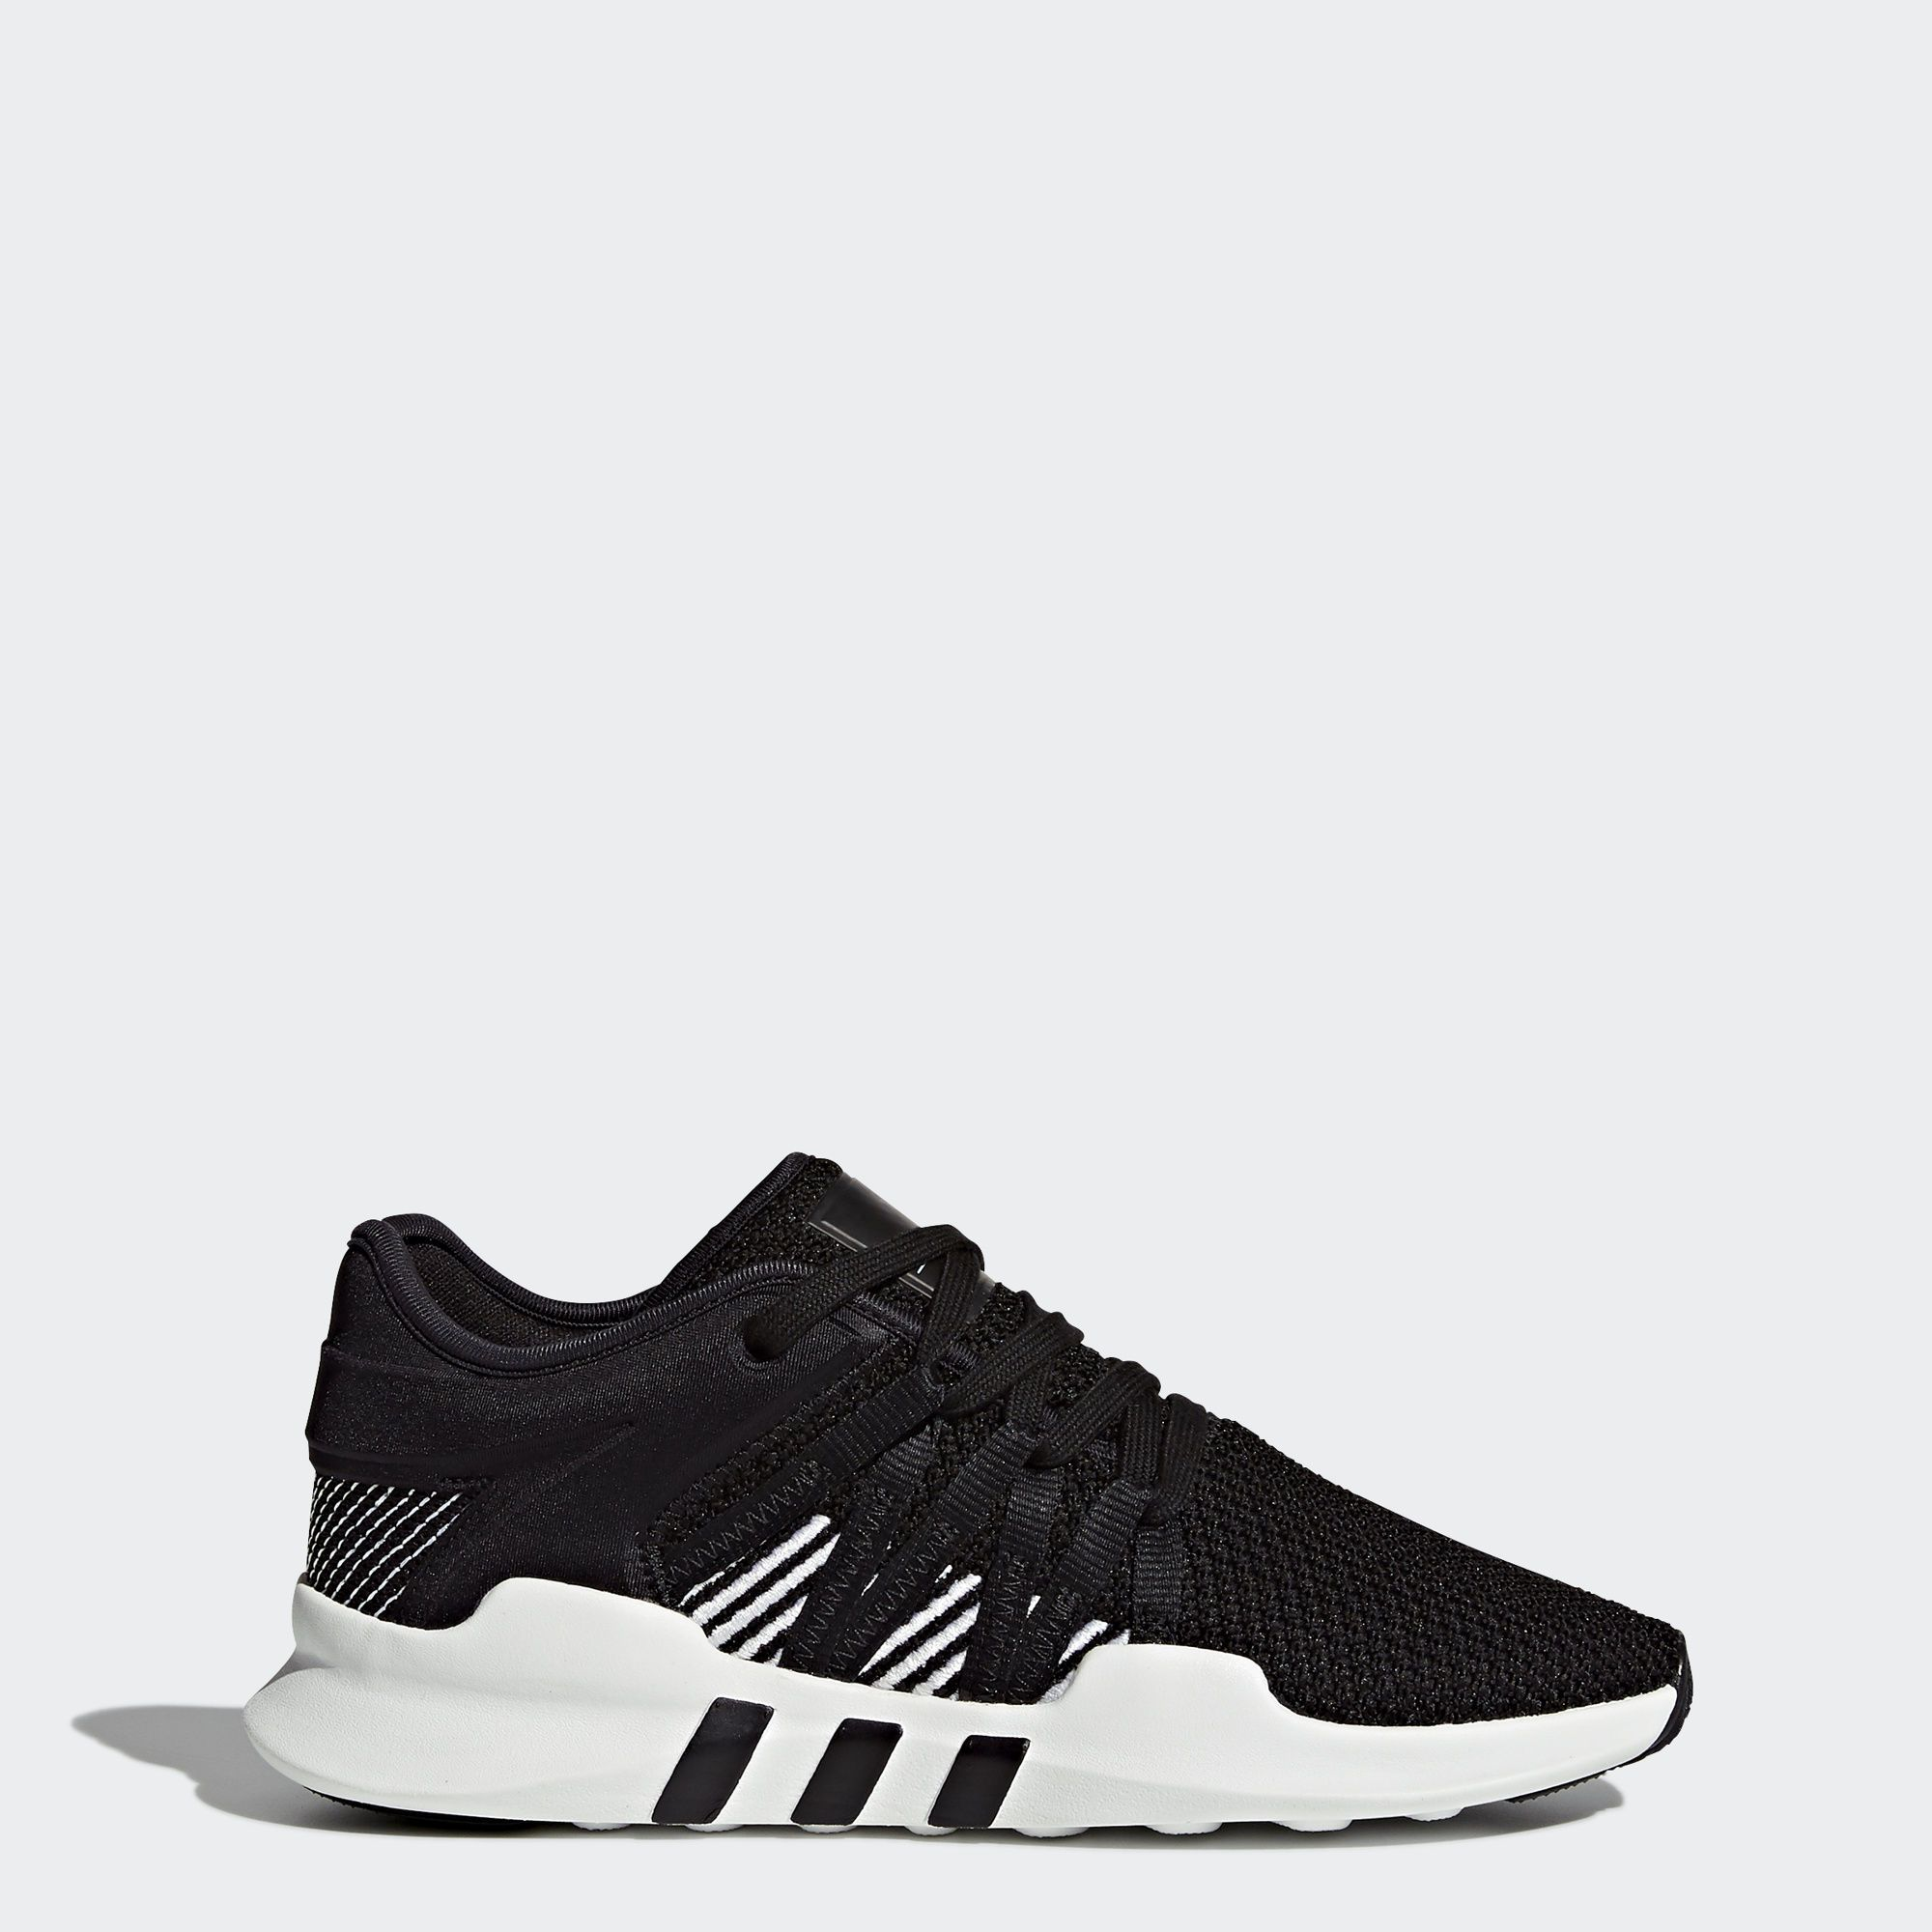 adidas EQT Racing ADV Shoes Women'sWith a technical look